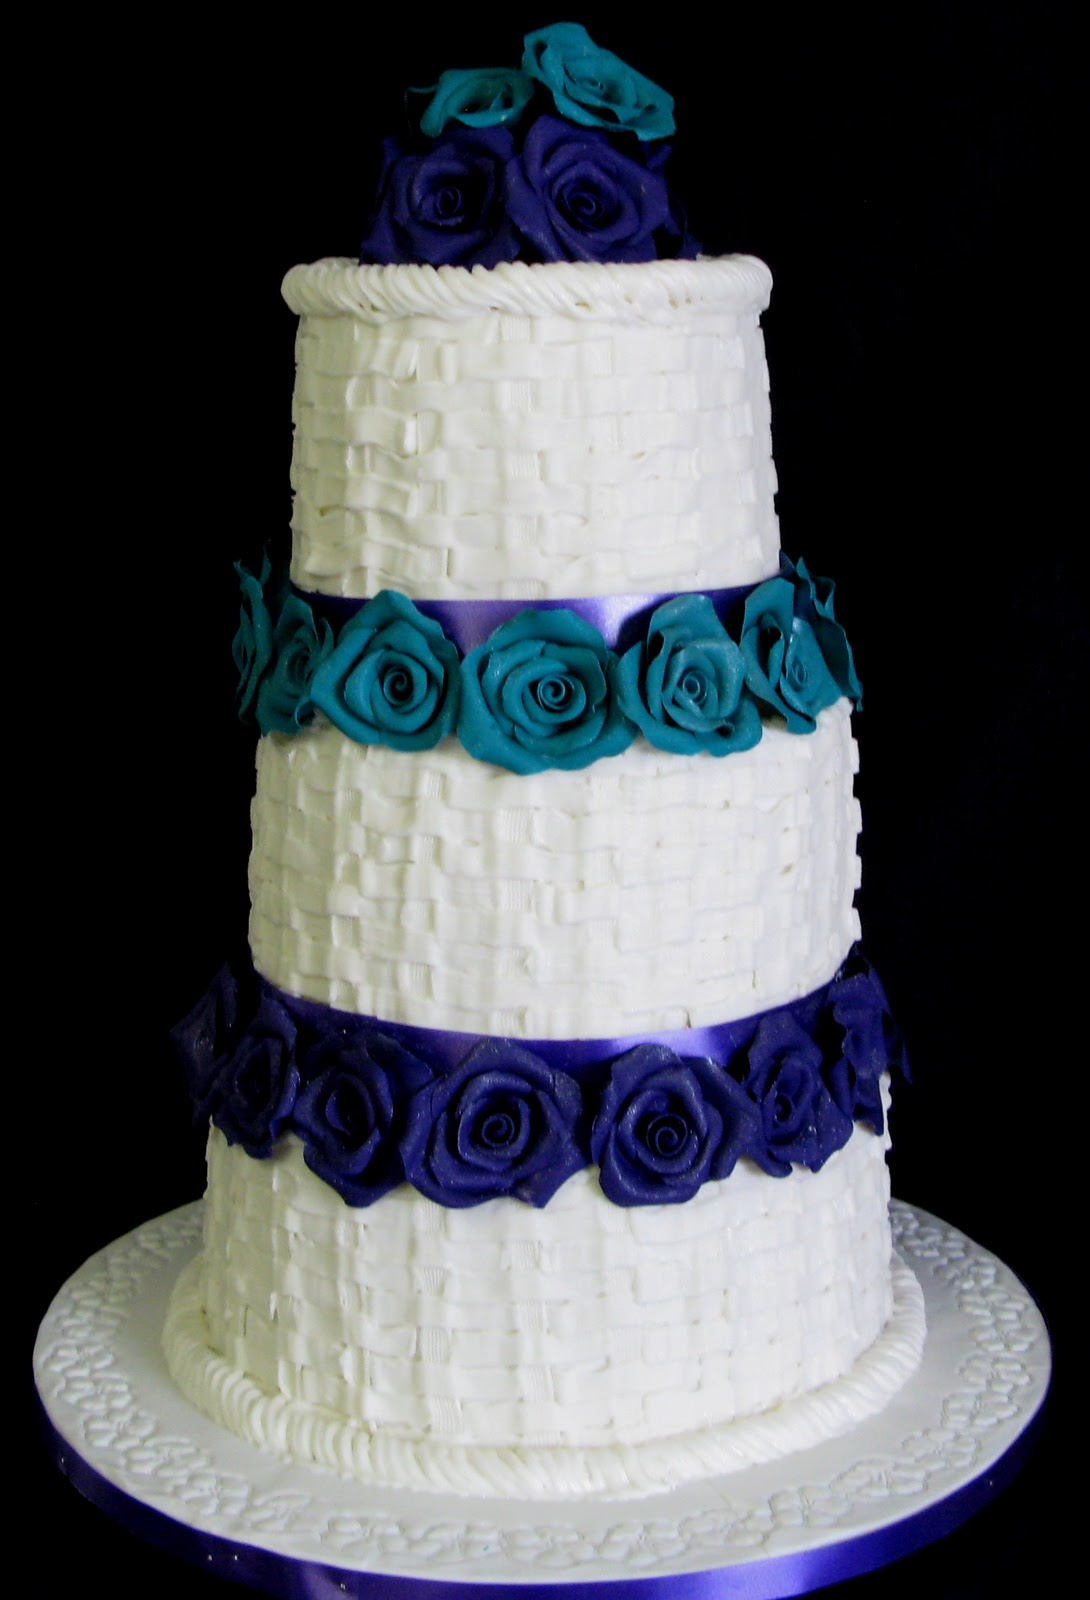 sugarcraft by soni three tier wedding cake tiers of roses in baskets. Black Bedroom Furniture Sets. Home Design Ideas